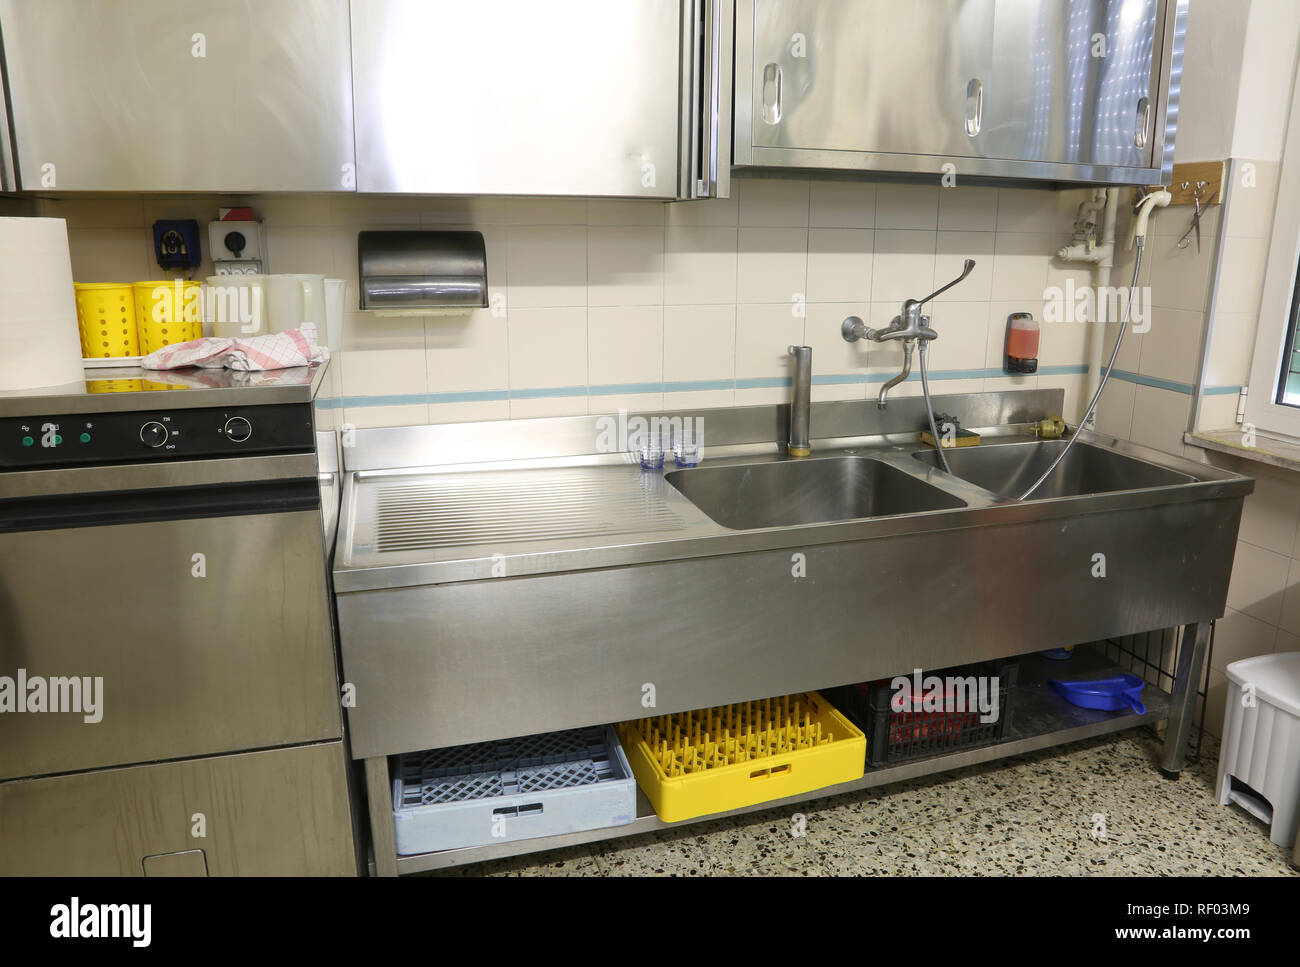 Stainless Steel Furniture Of A Large Industrial Kitchen With